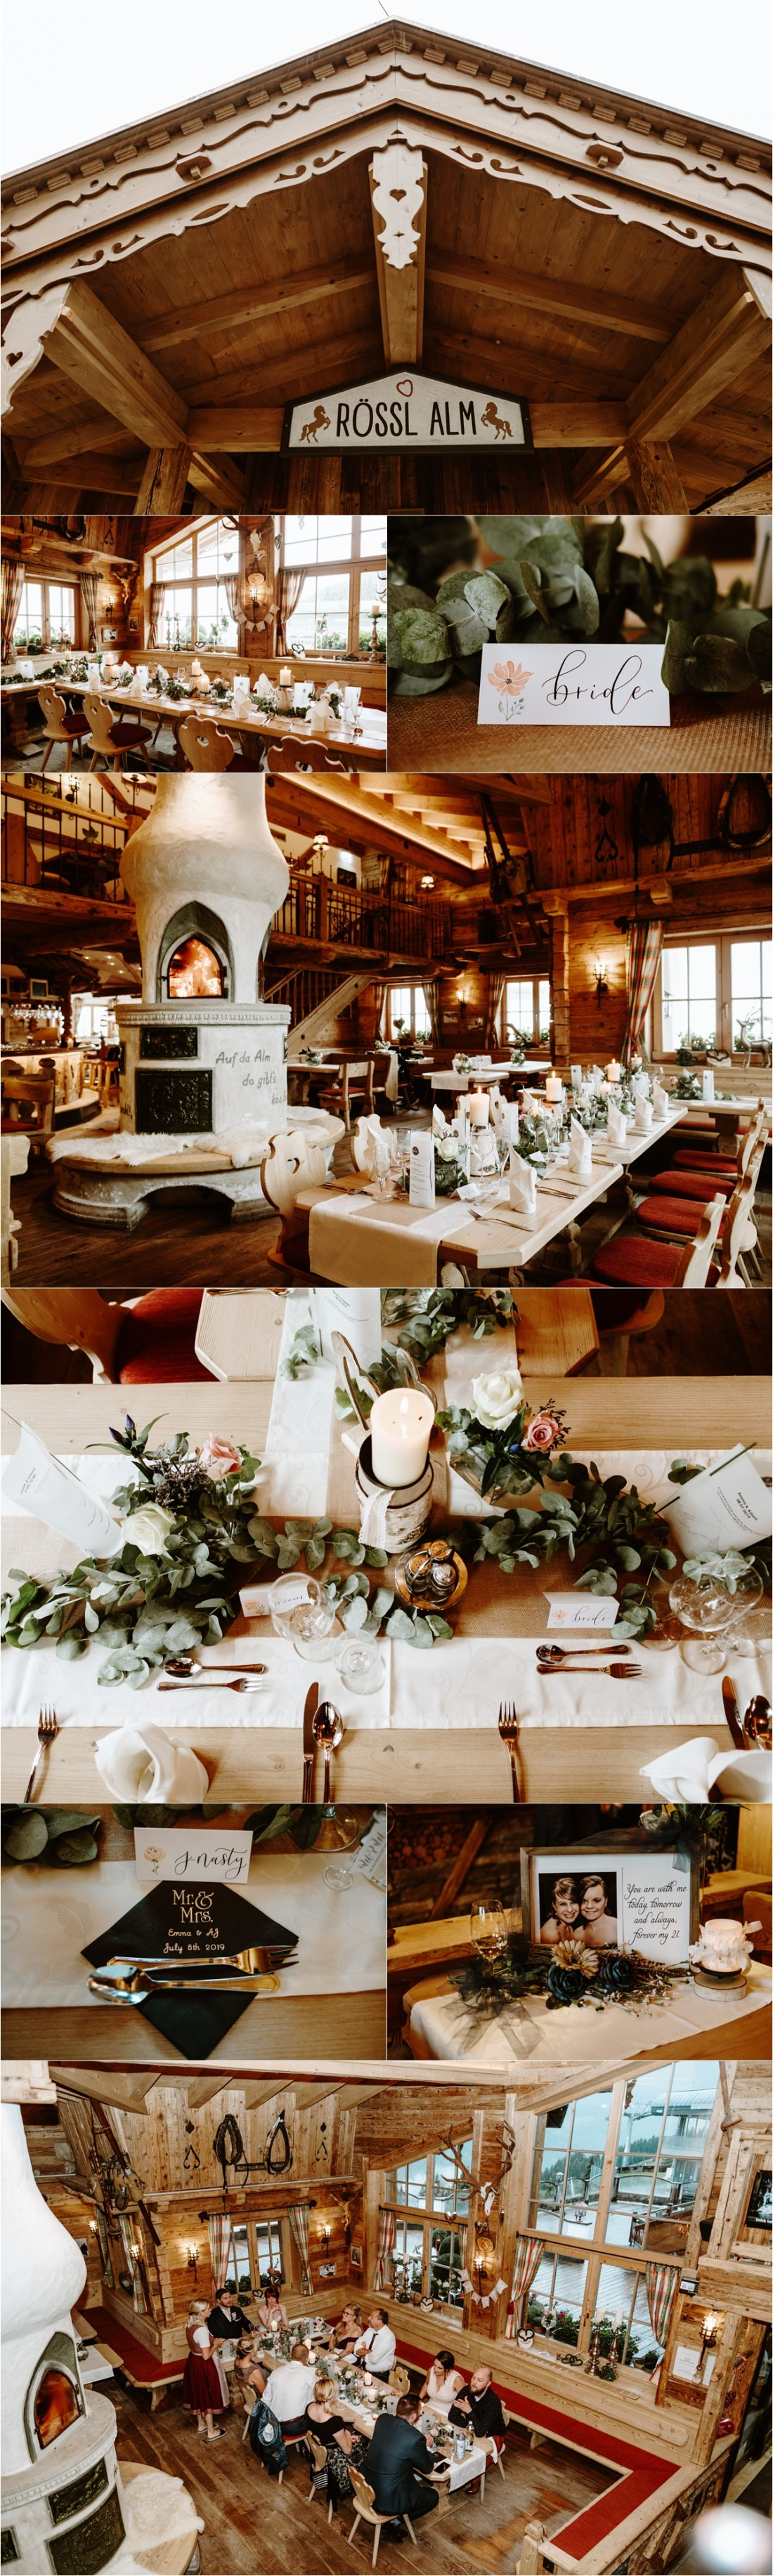 A mountain hut wedding reception in Austria. Photos by Wild Connections Photography